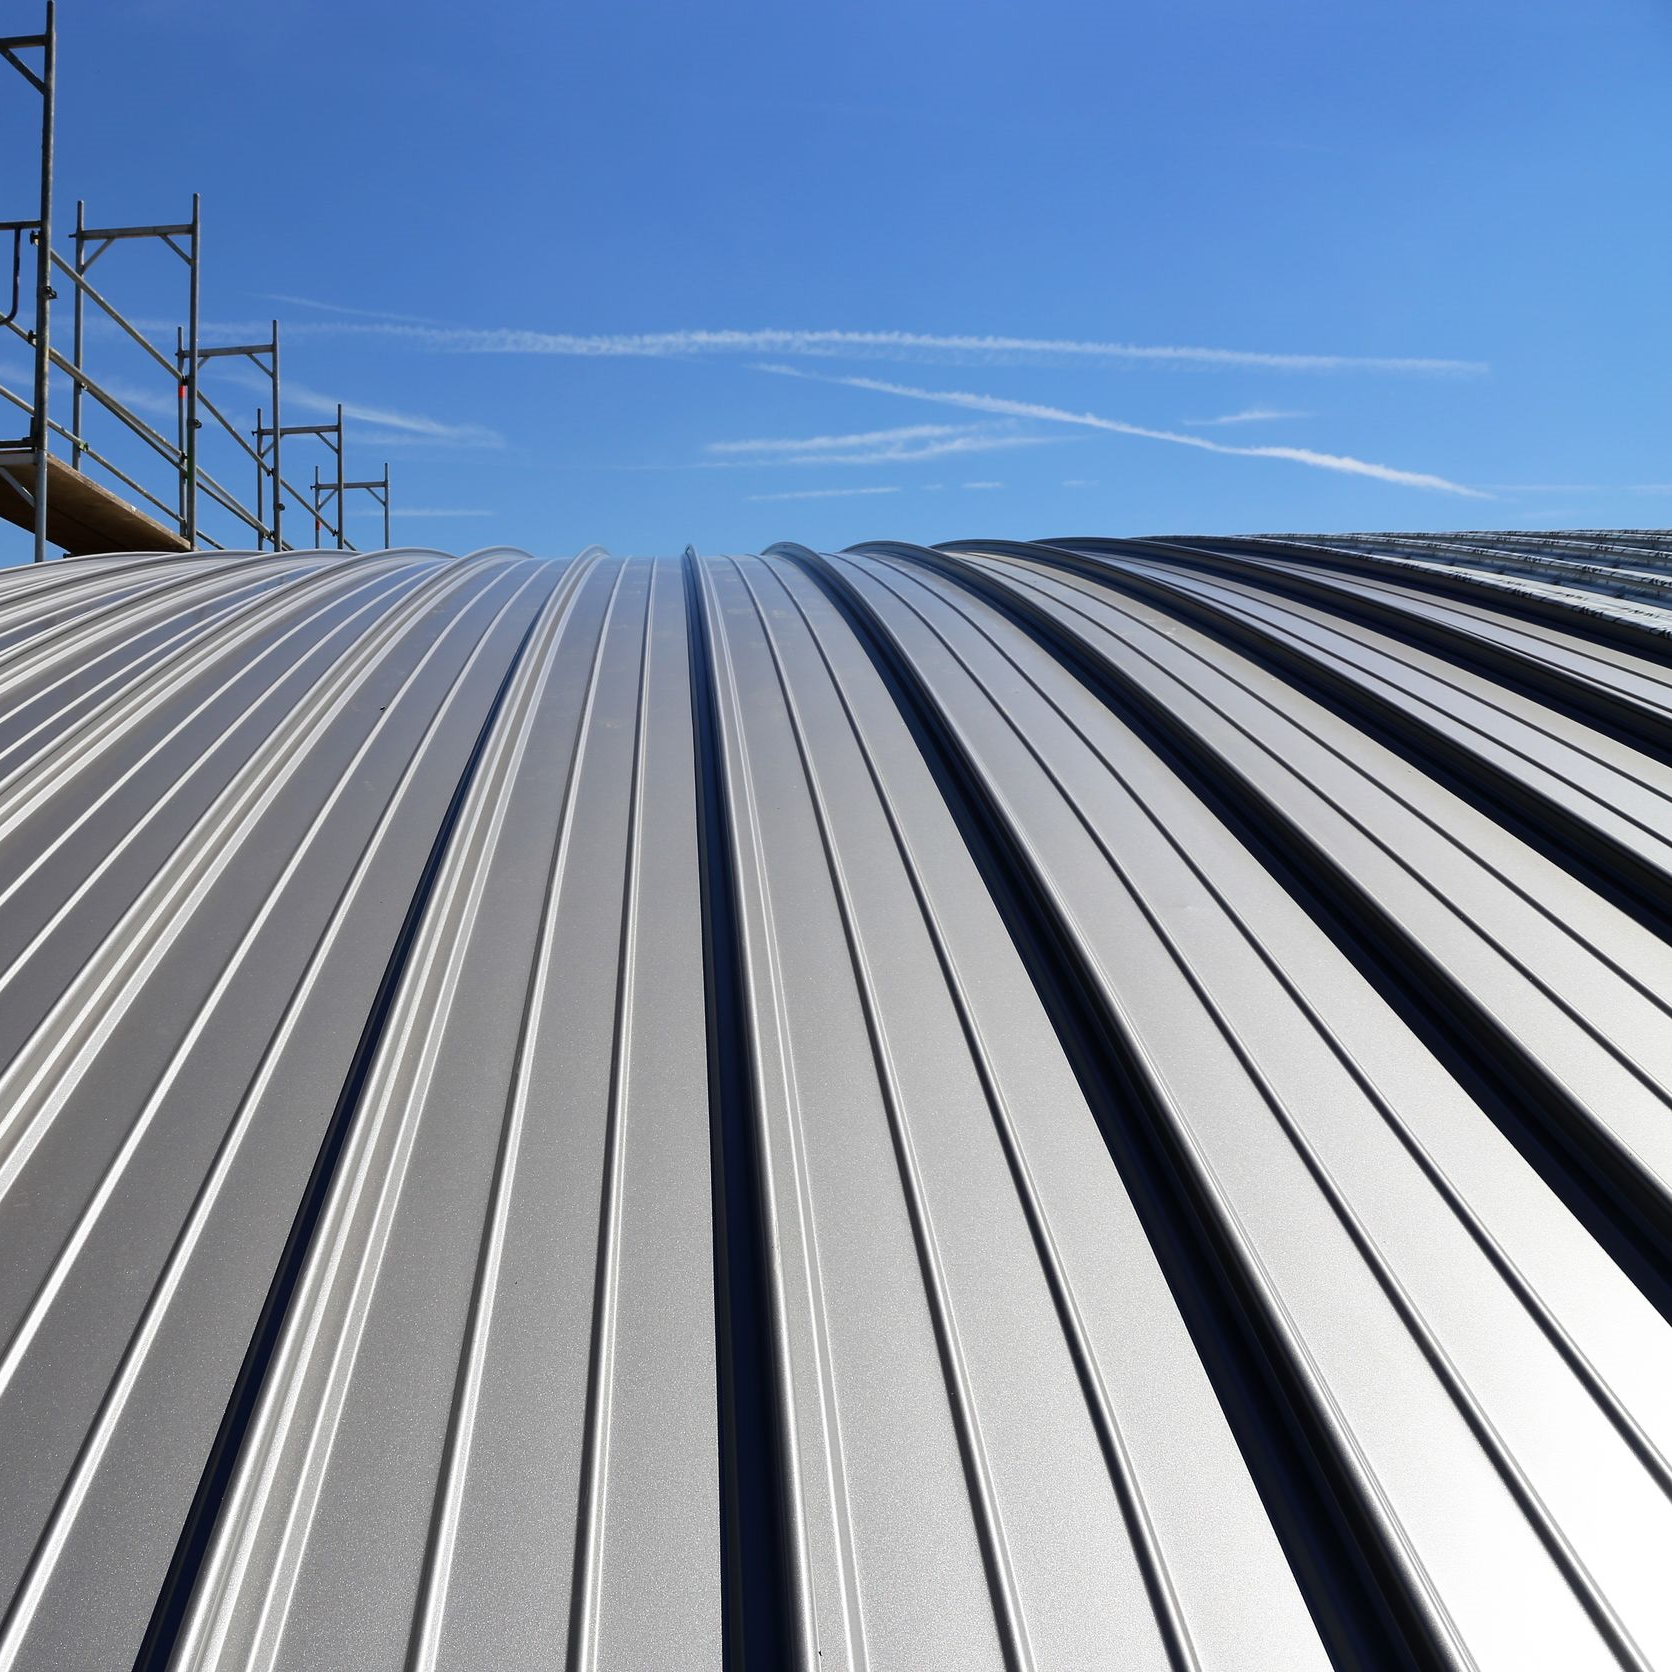 An industrial standing seam roof